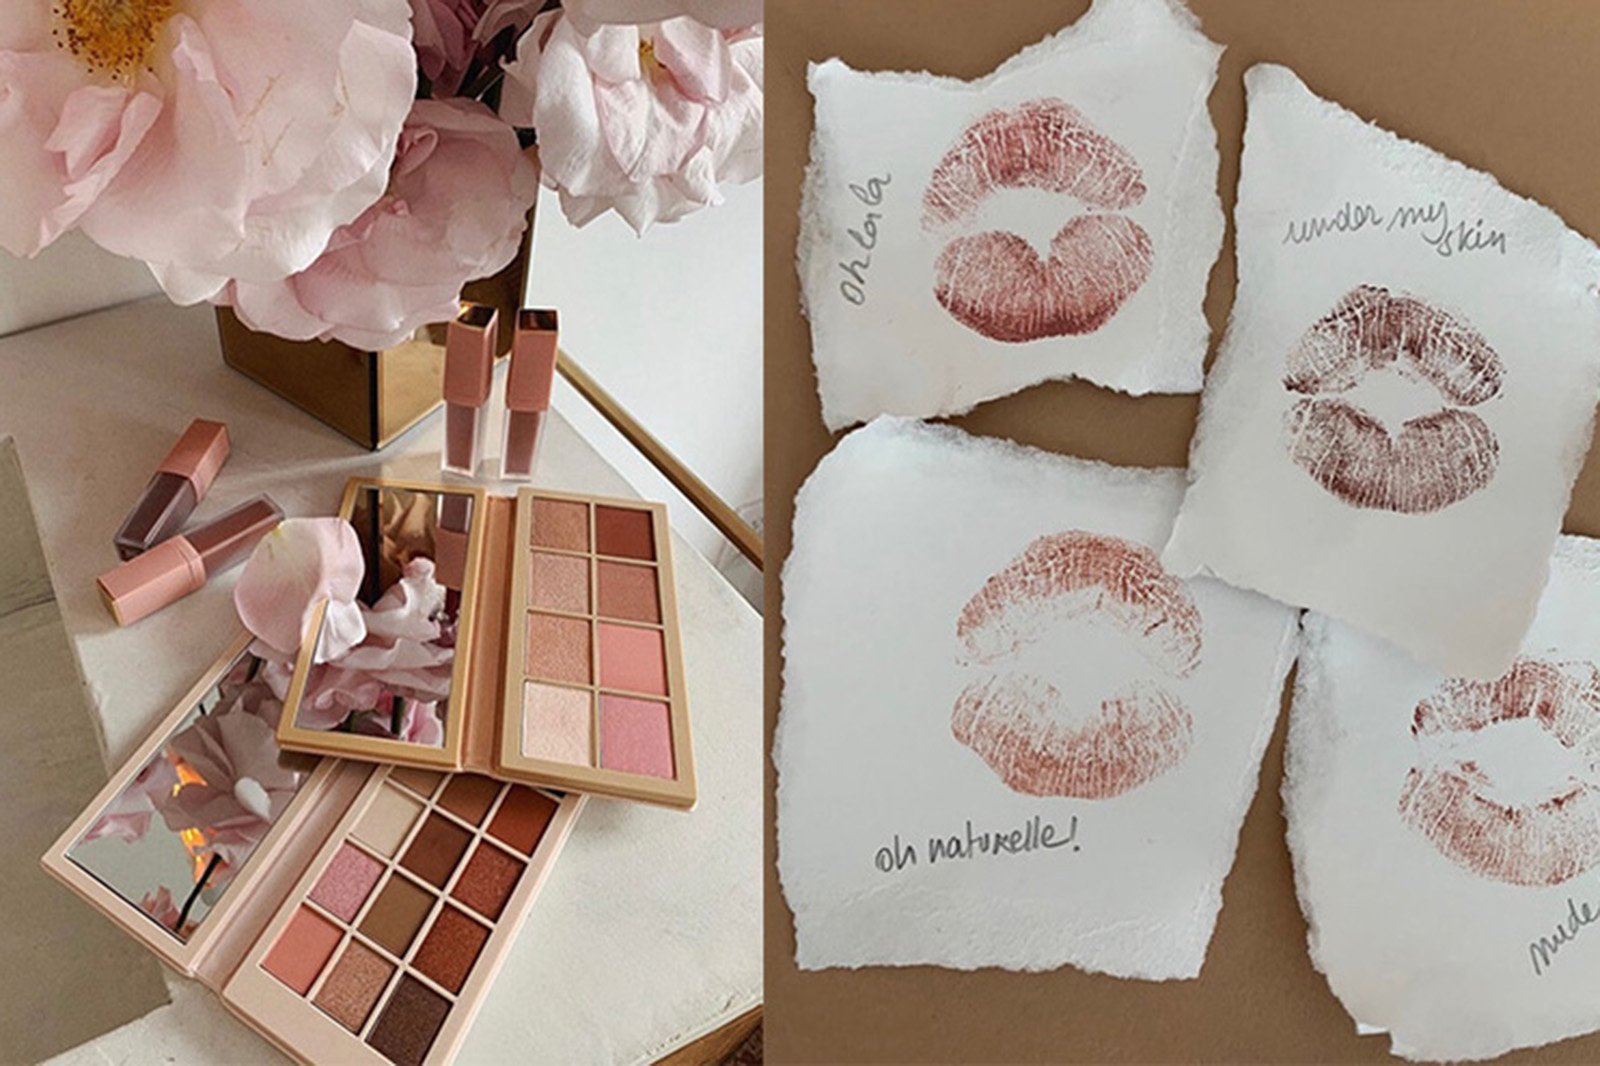 estee lauder violette oh naturelle printemps 2019 collection maquillage